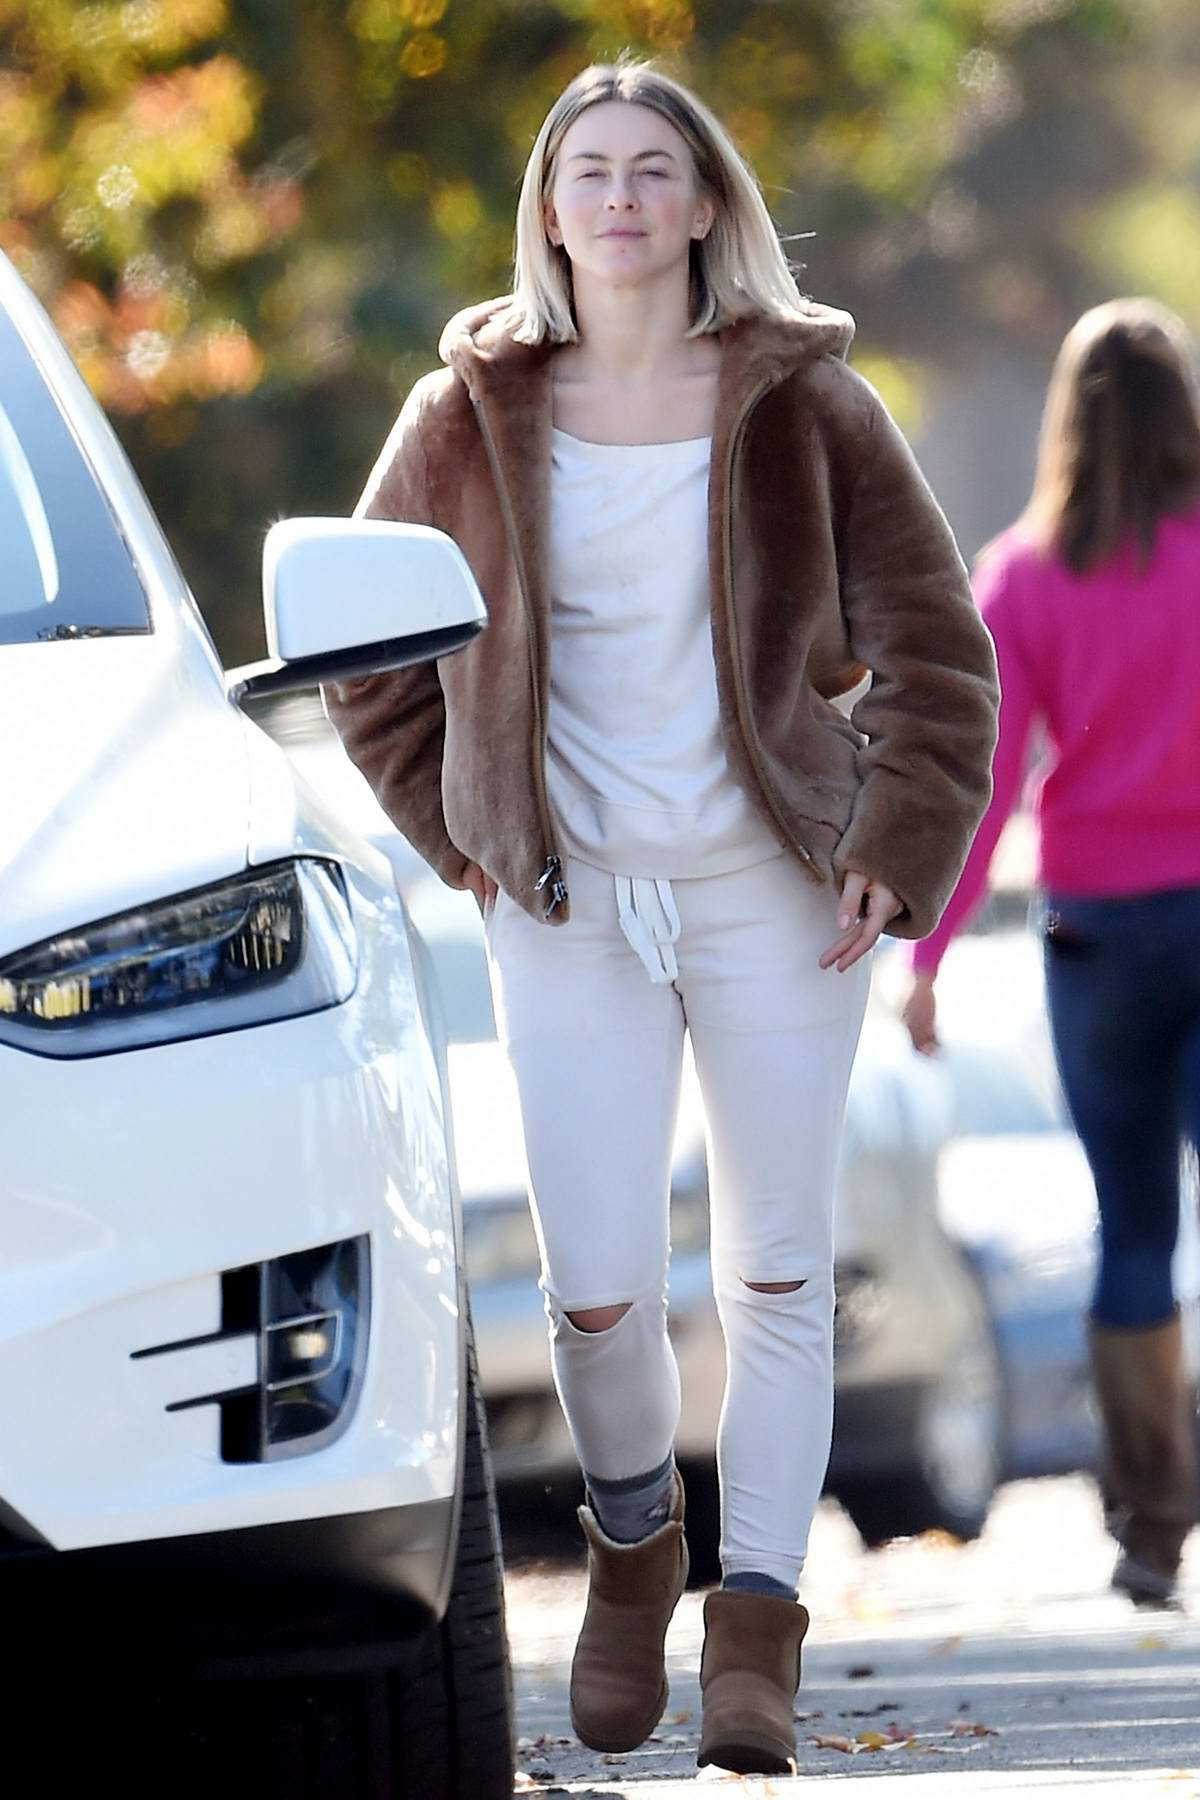 Julianne Hough sports casual makeup free look with a brown fur coat while running a few errands in Burbank, California